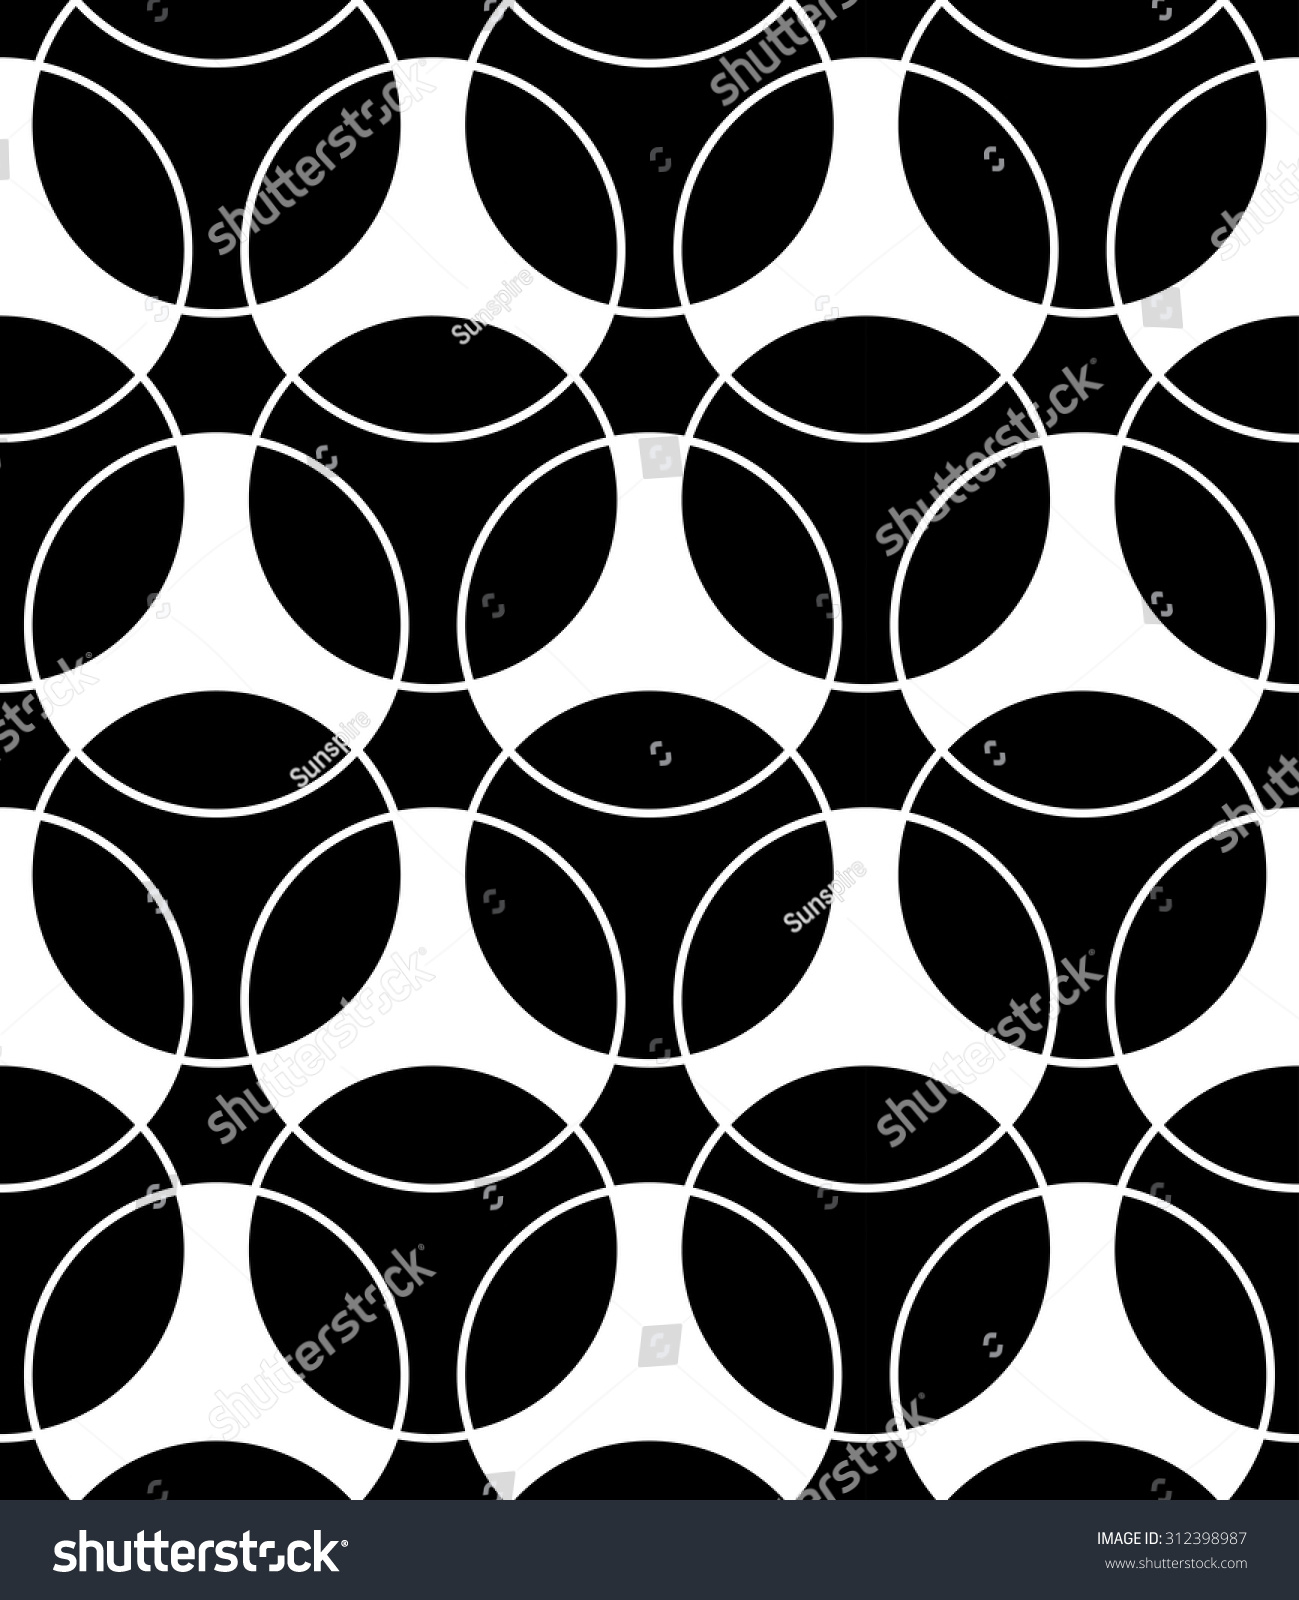 Bed sheet pattern texture - Vector Modern Seamless Pattern Black And White Textile Print Stylish Background Abstract Texture